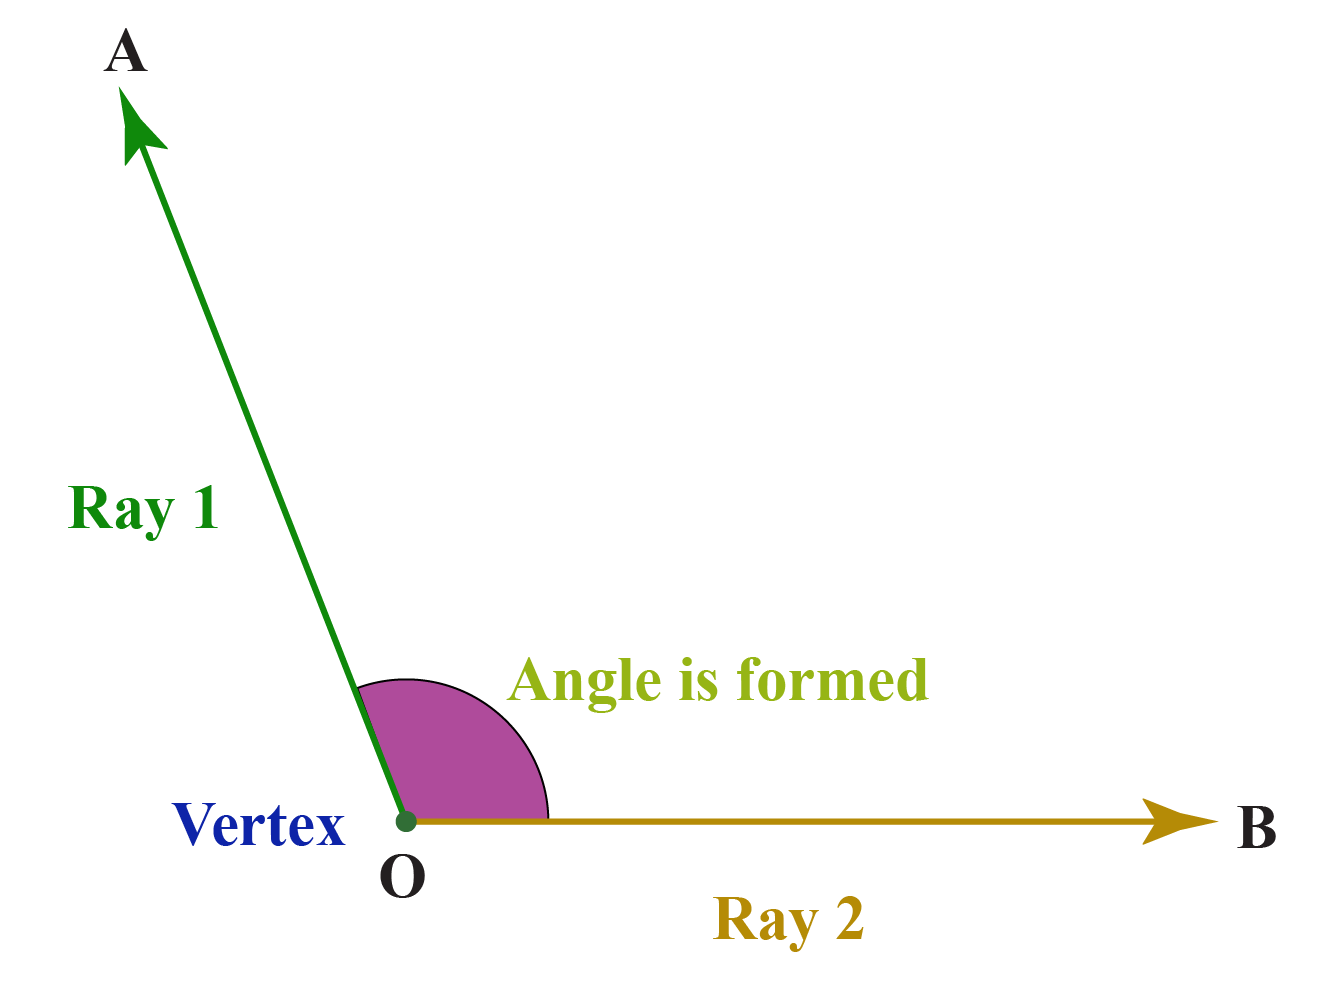 An angle is formed when 2 rays meet